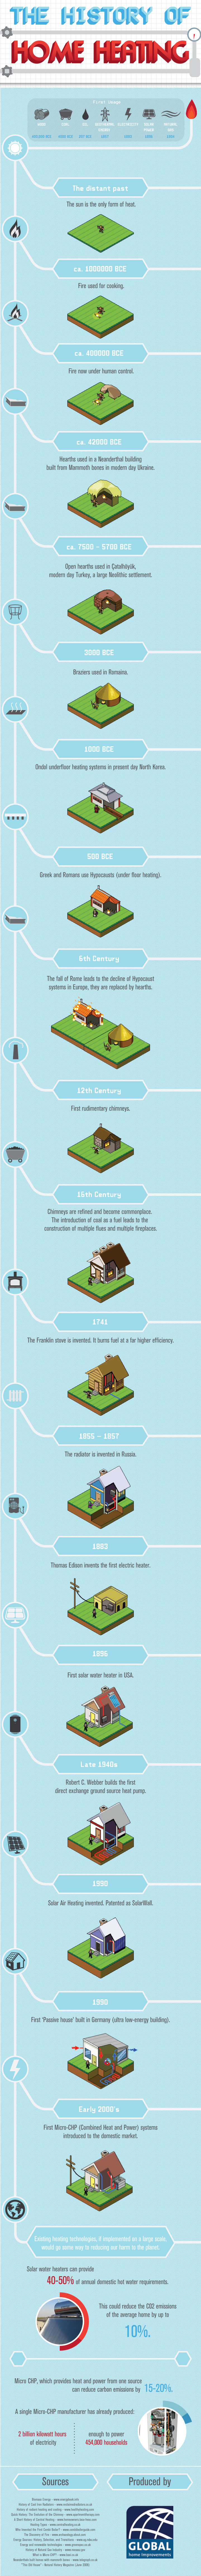 The History Of Home Heating Infographic Data Visualization